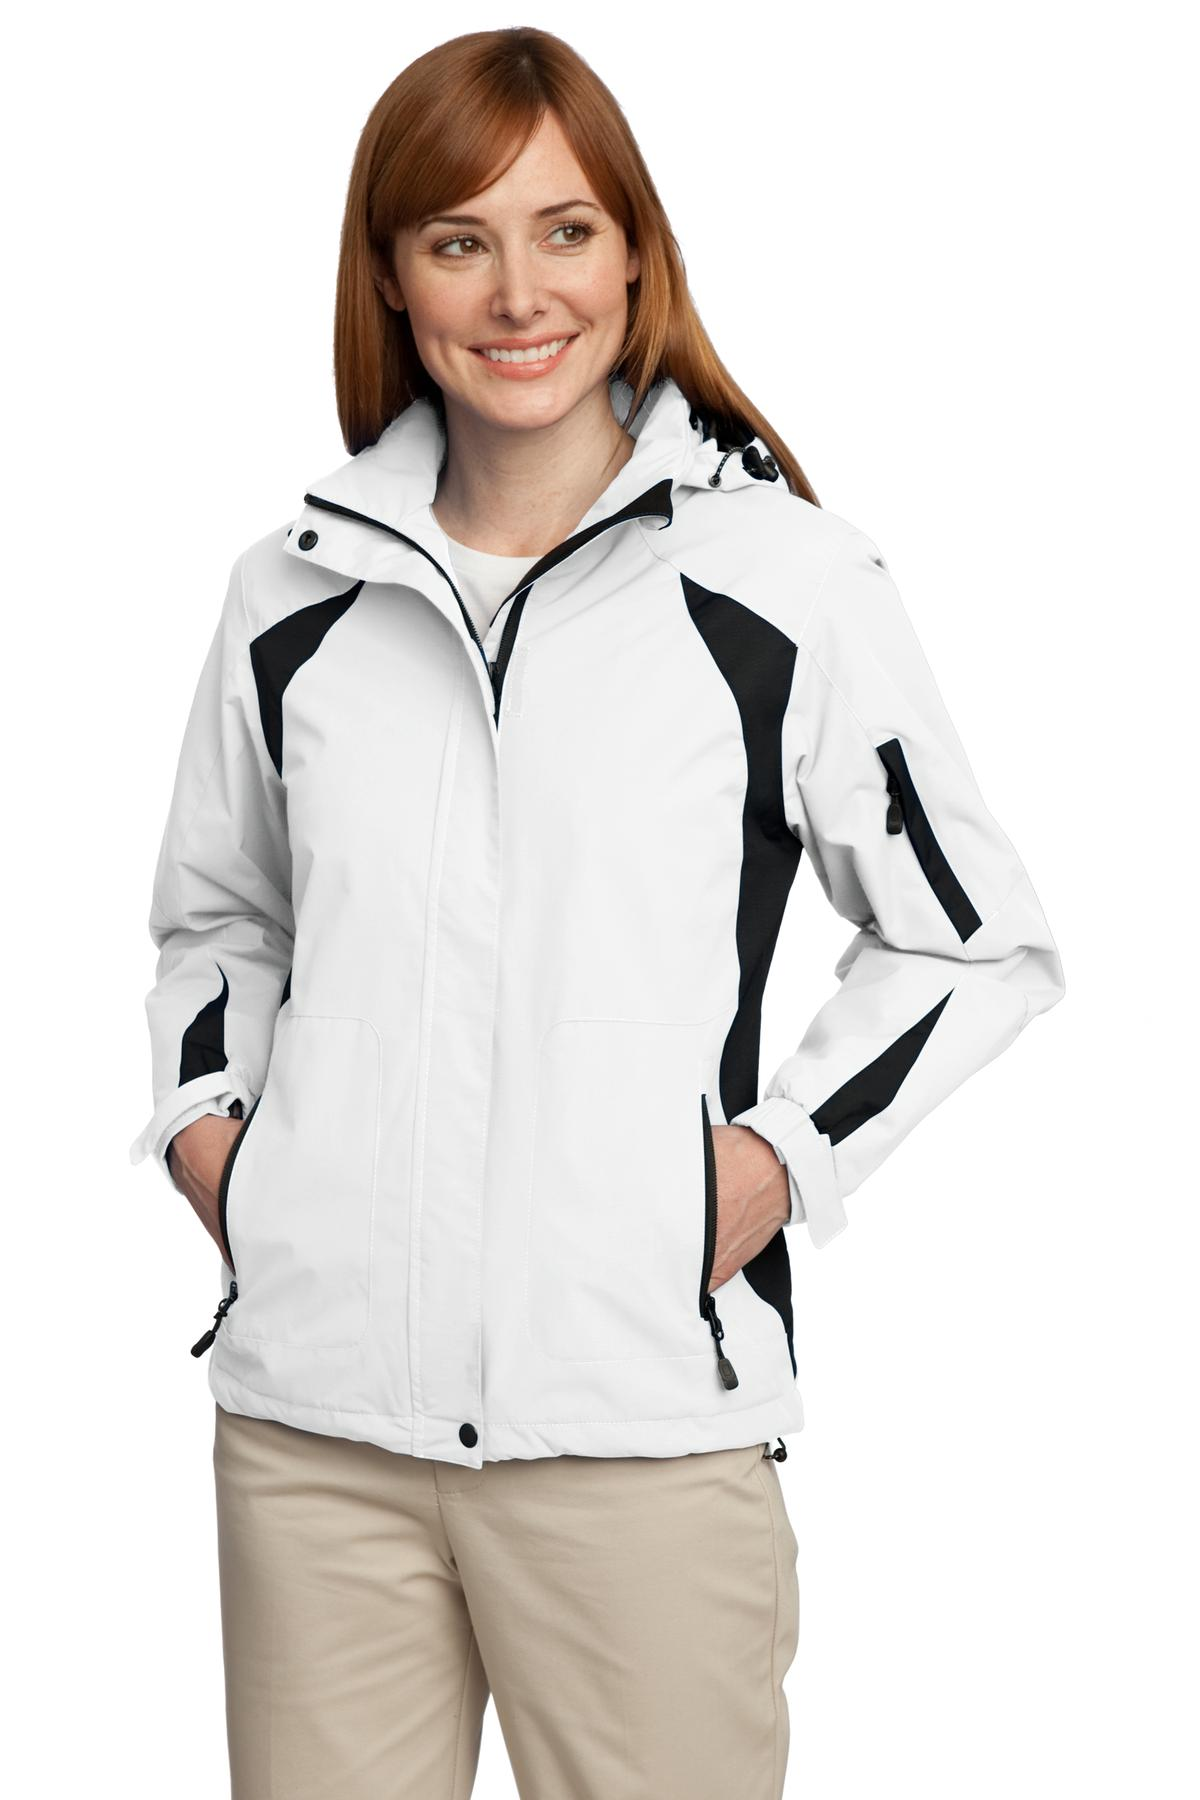 Outerwear-Parkas-Shells-Systems-20